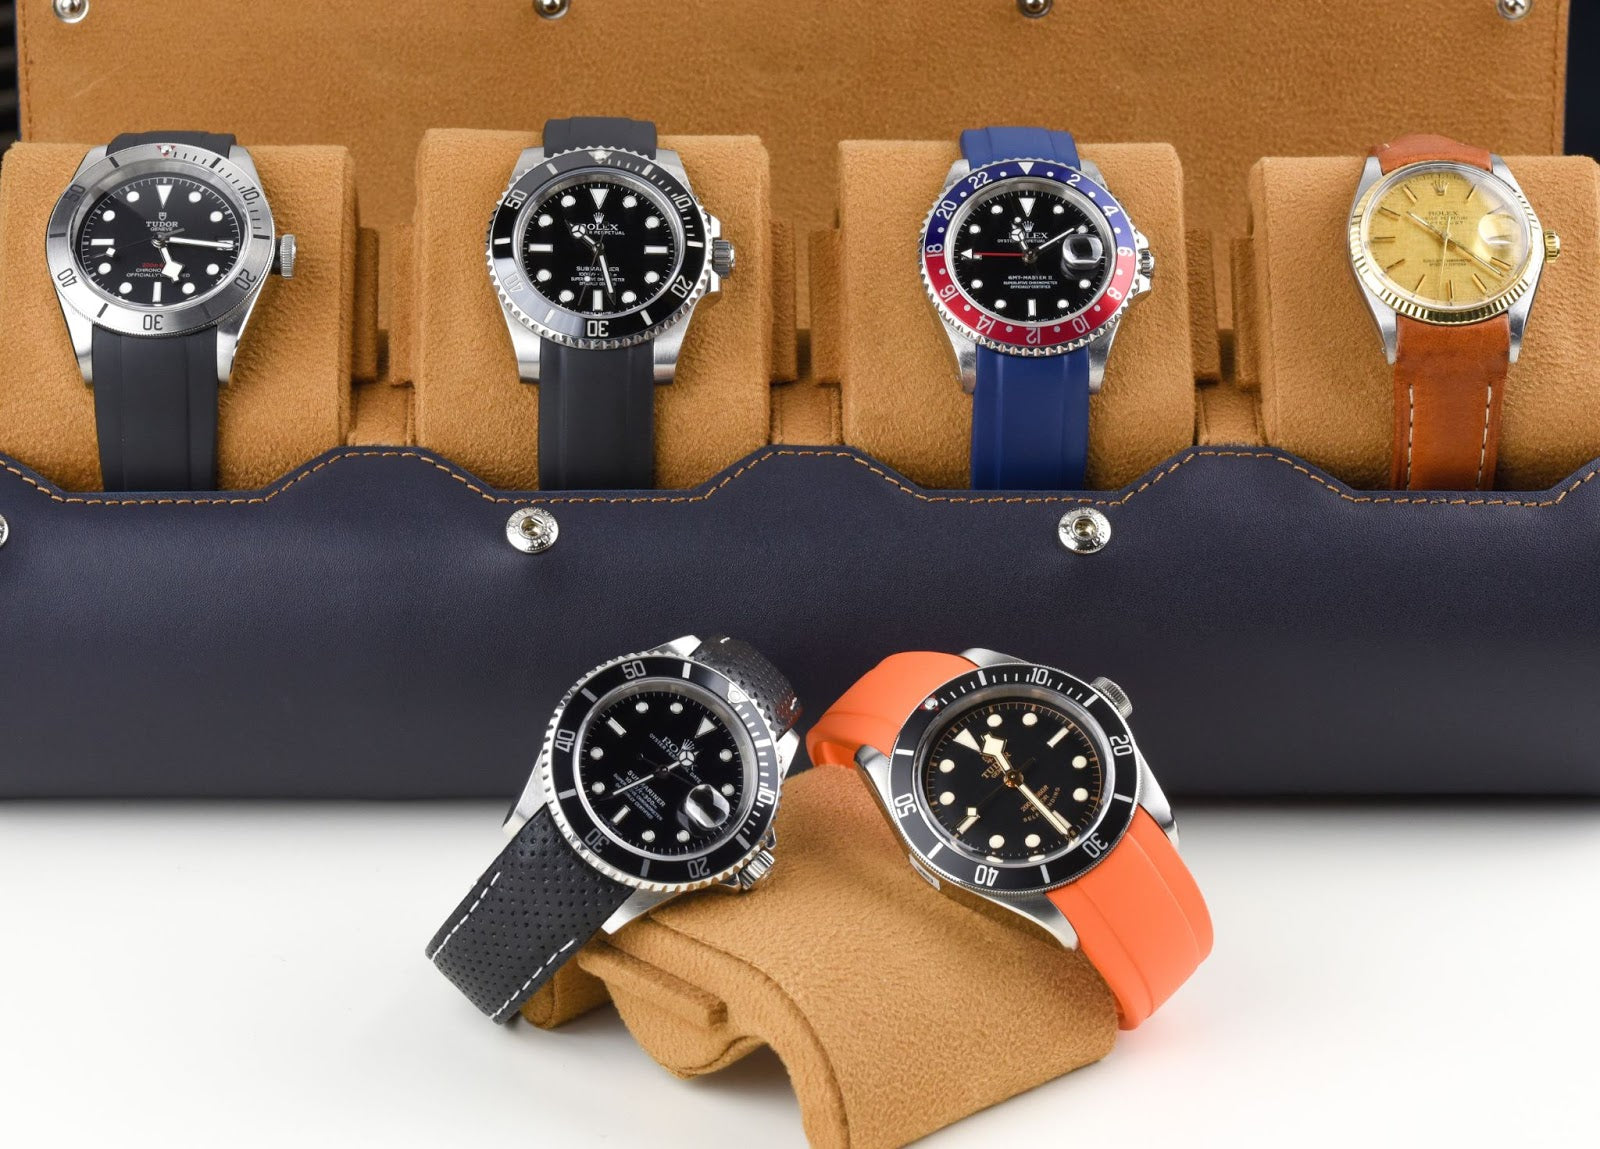 everest bands on rolex watches in watch roll